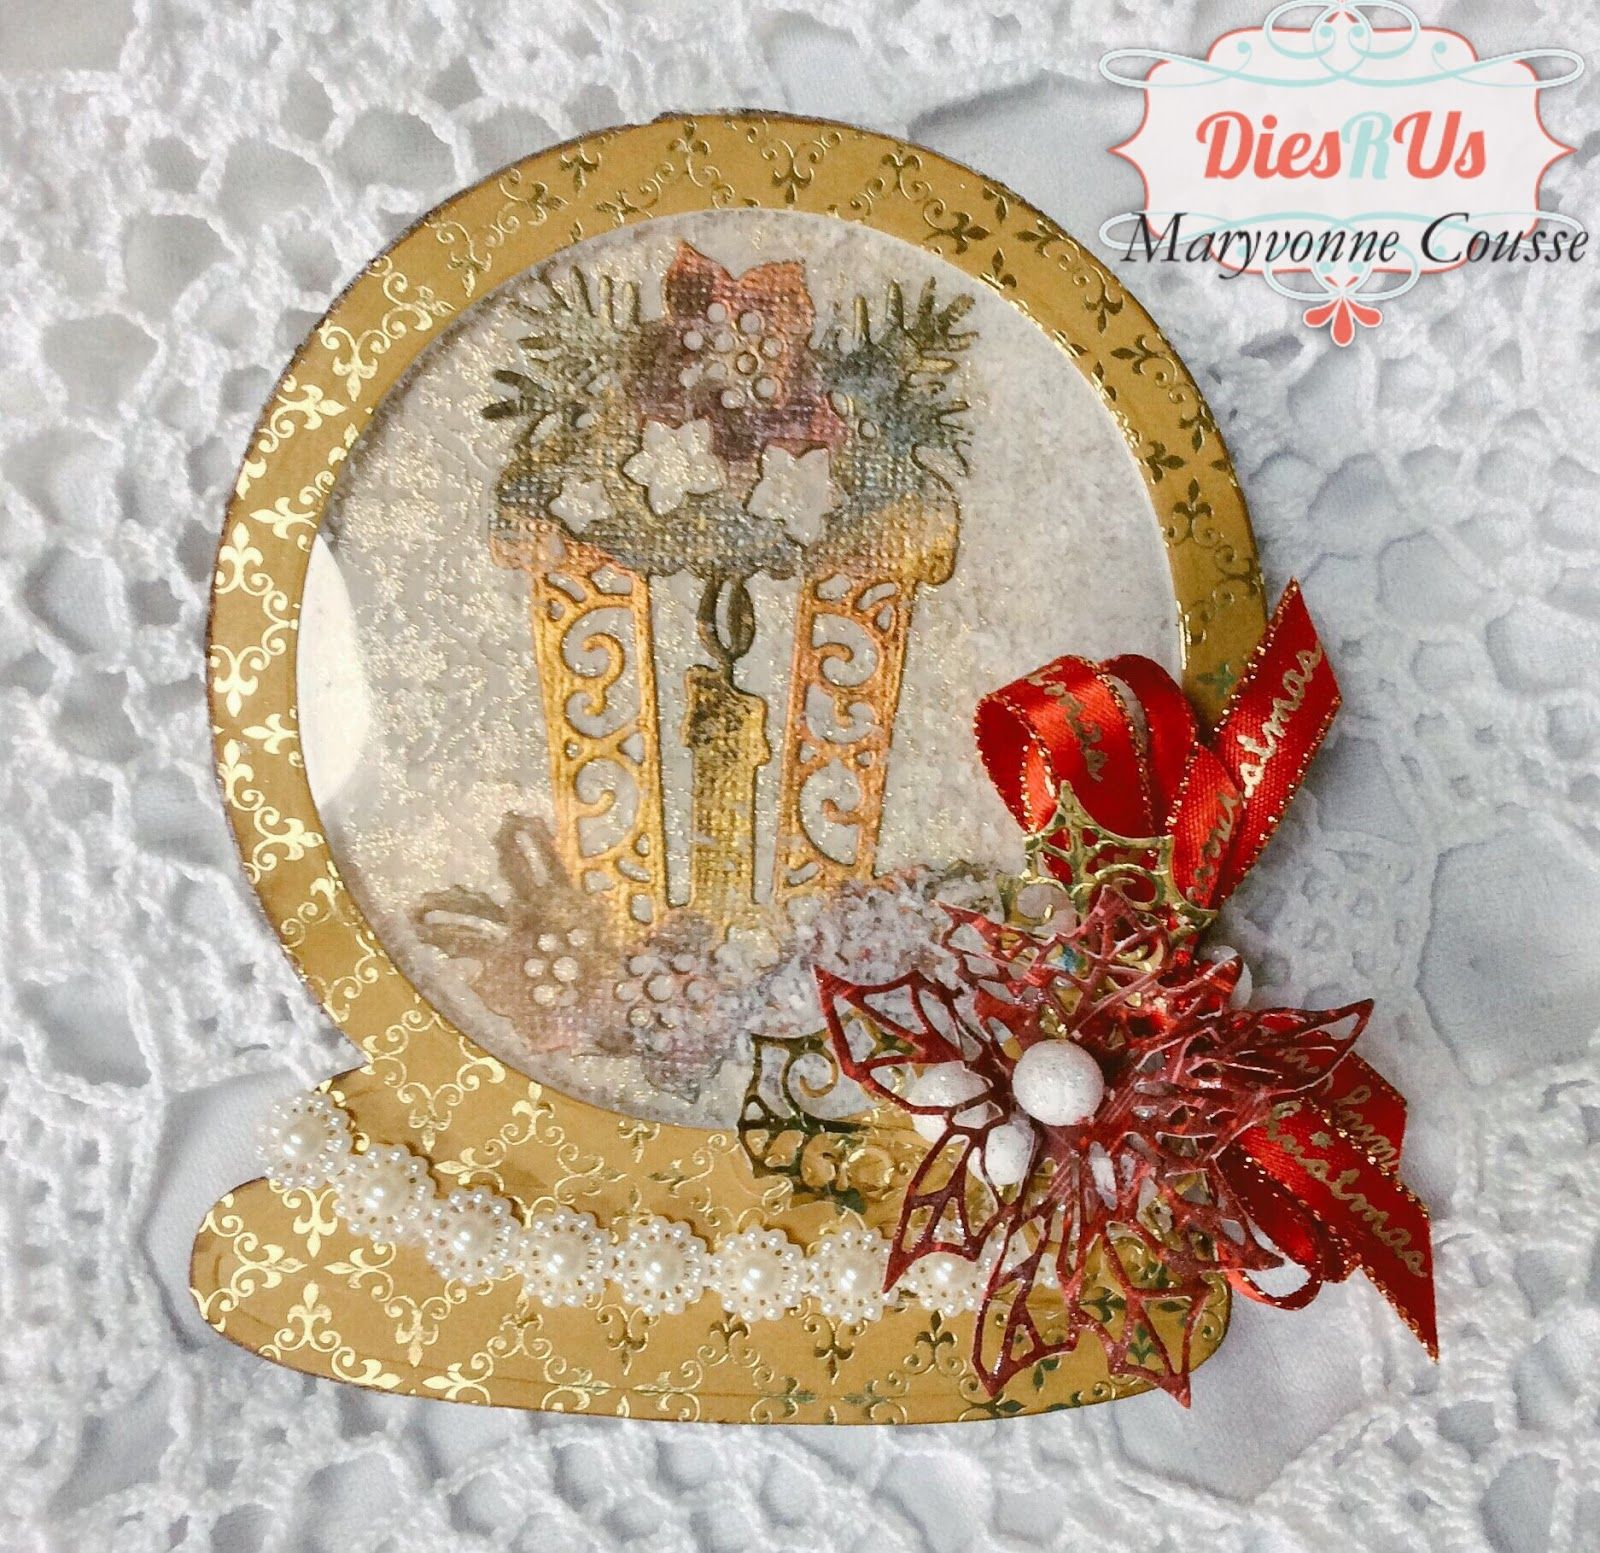 HI Dies R US Friends ! Maryvonne with you today for a Fun Christmas Snowglobe Shaker card ! Here is my Card : ...